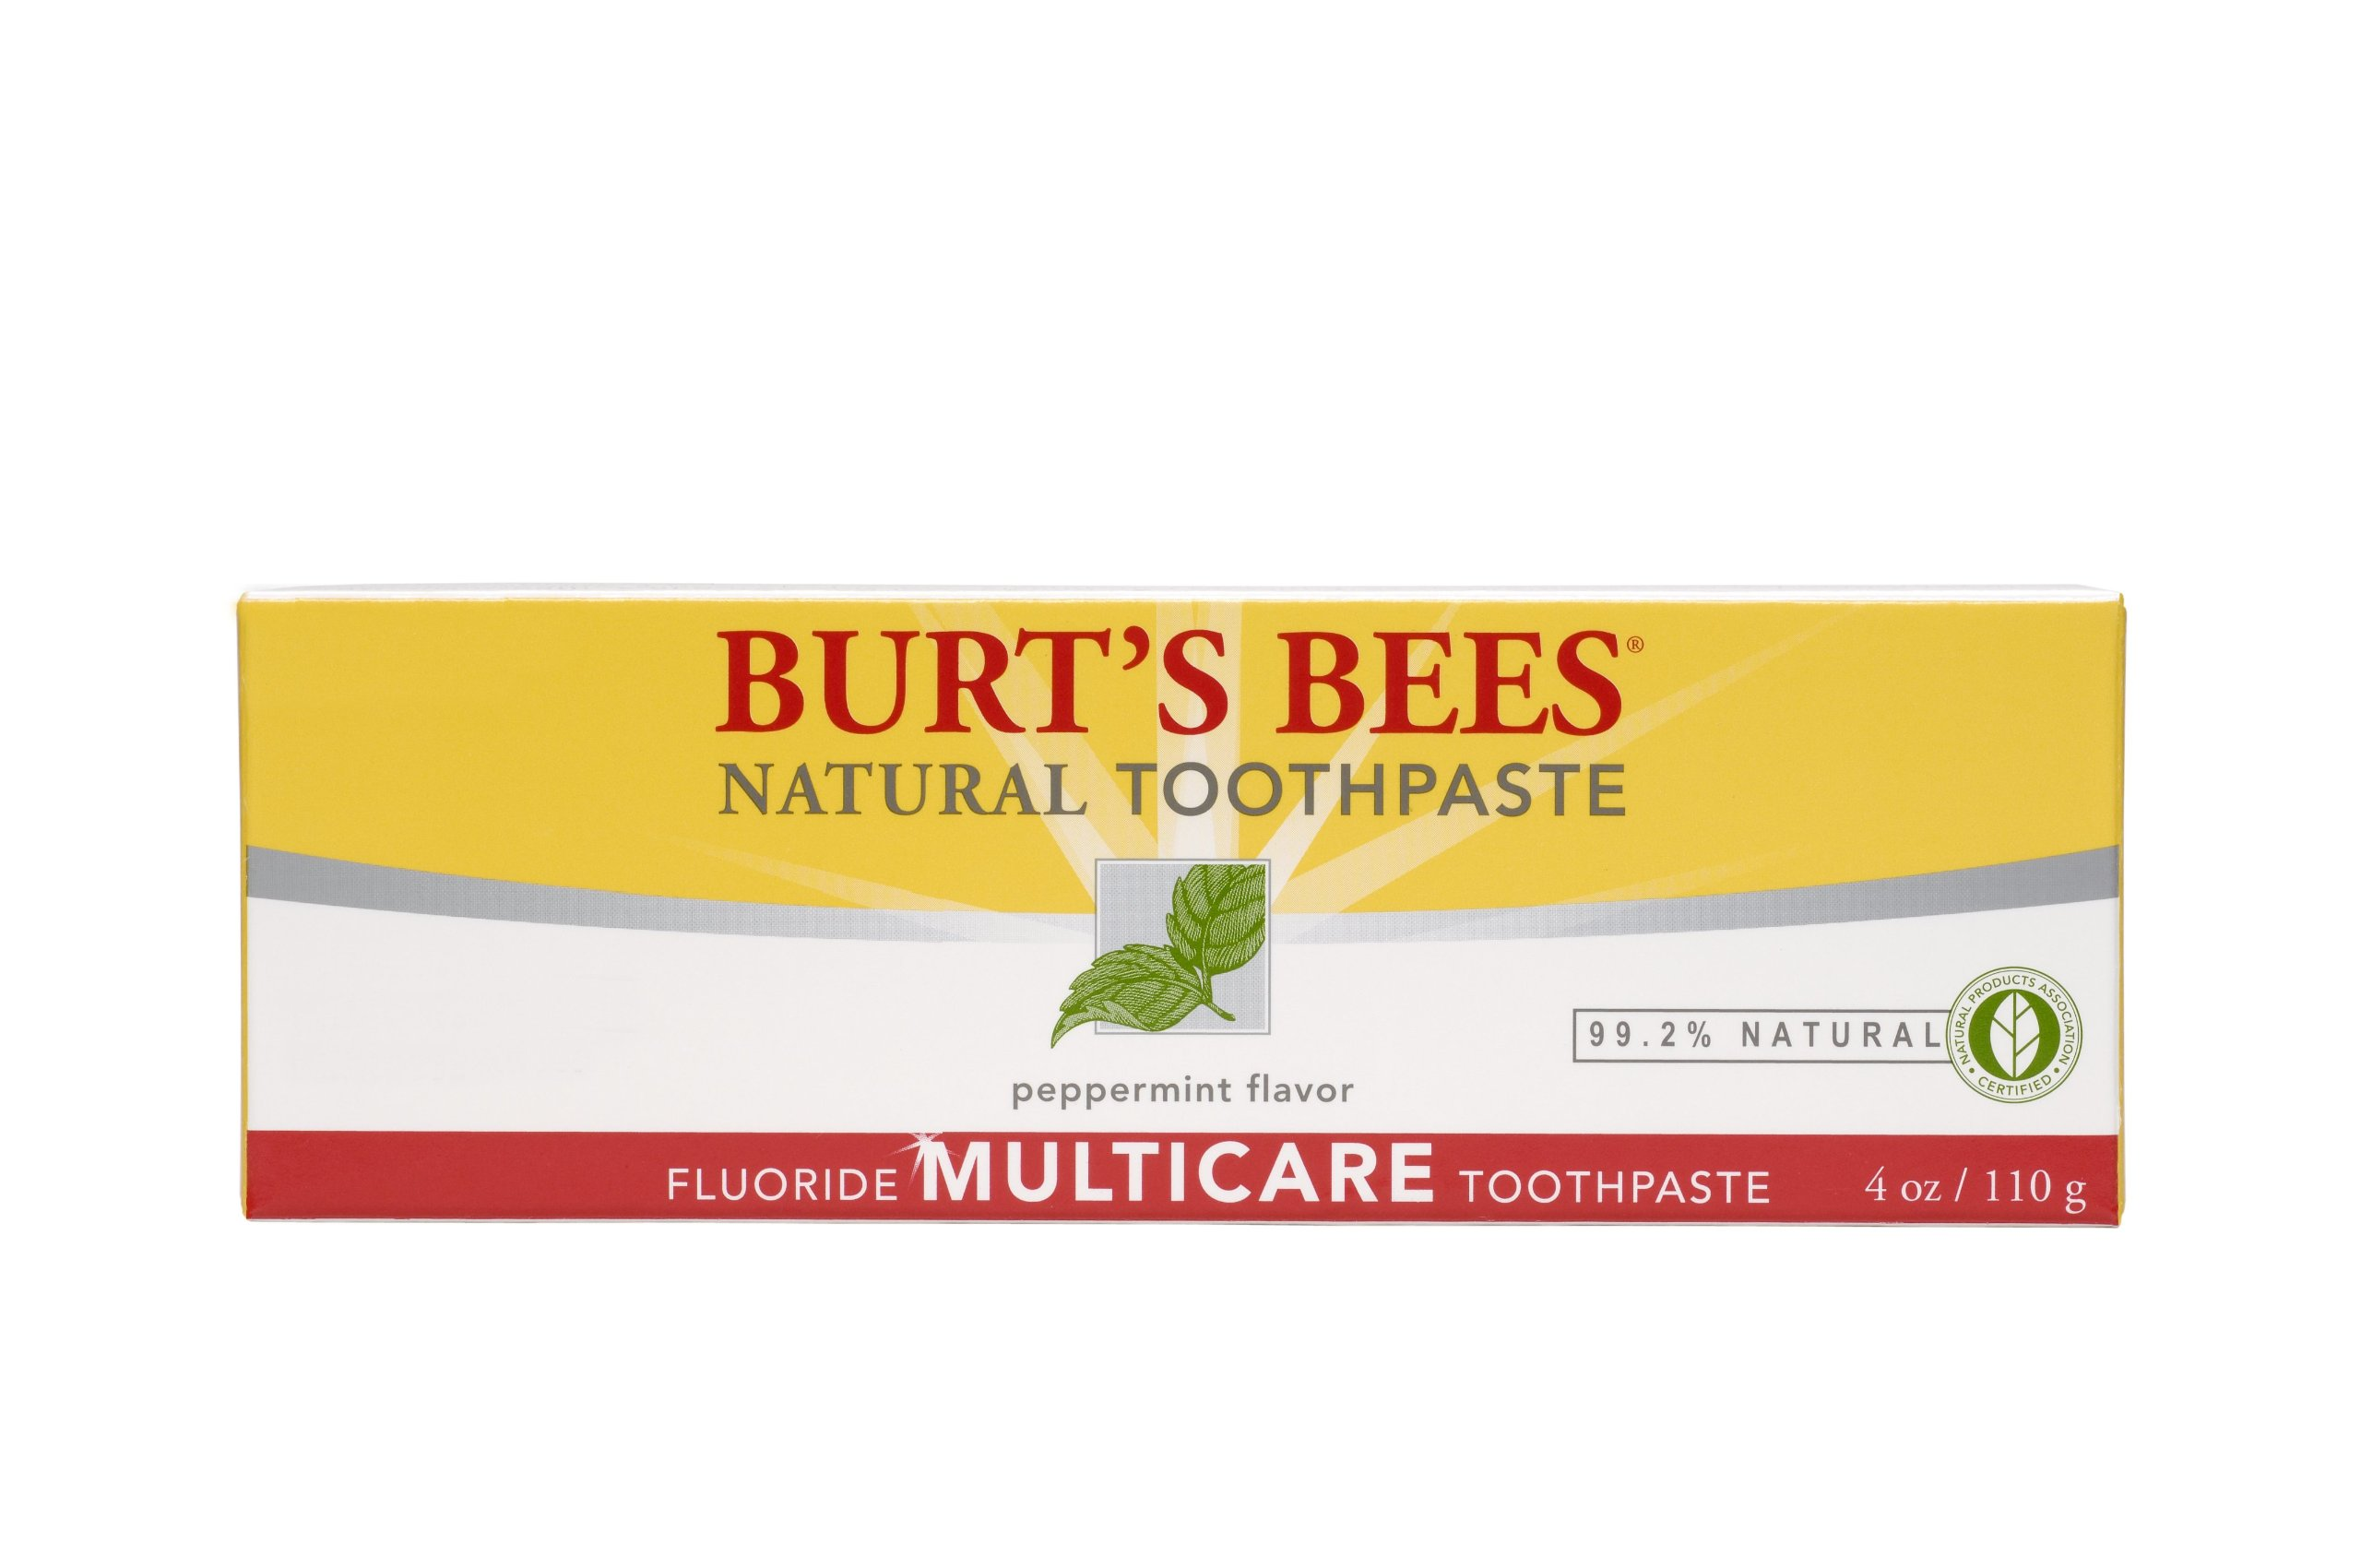 Burt's Bees Natural Toothpaste - Multicare with Fluoride, 4 Ounces (Pack of 4)